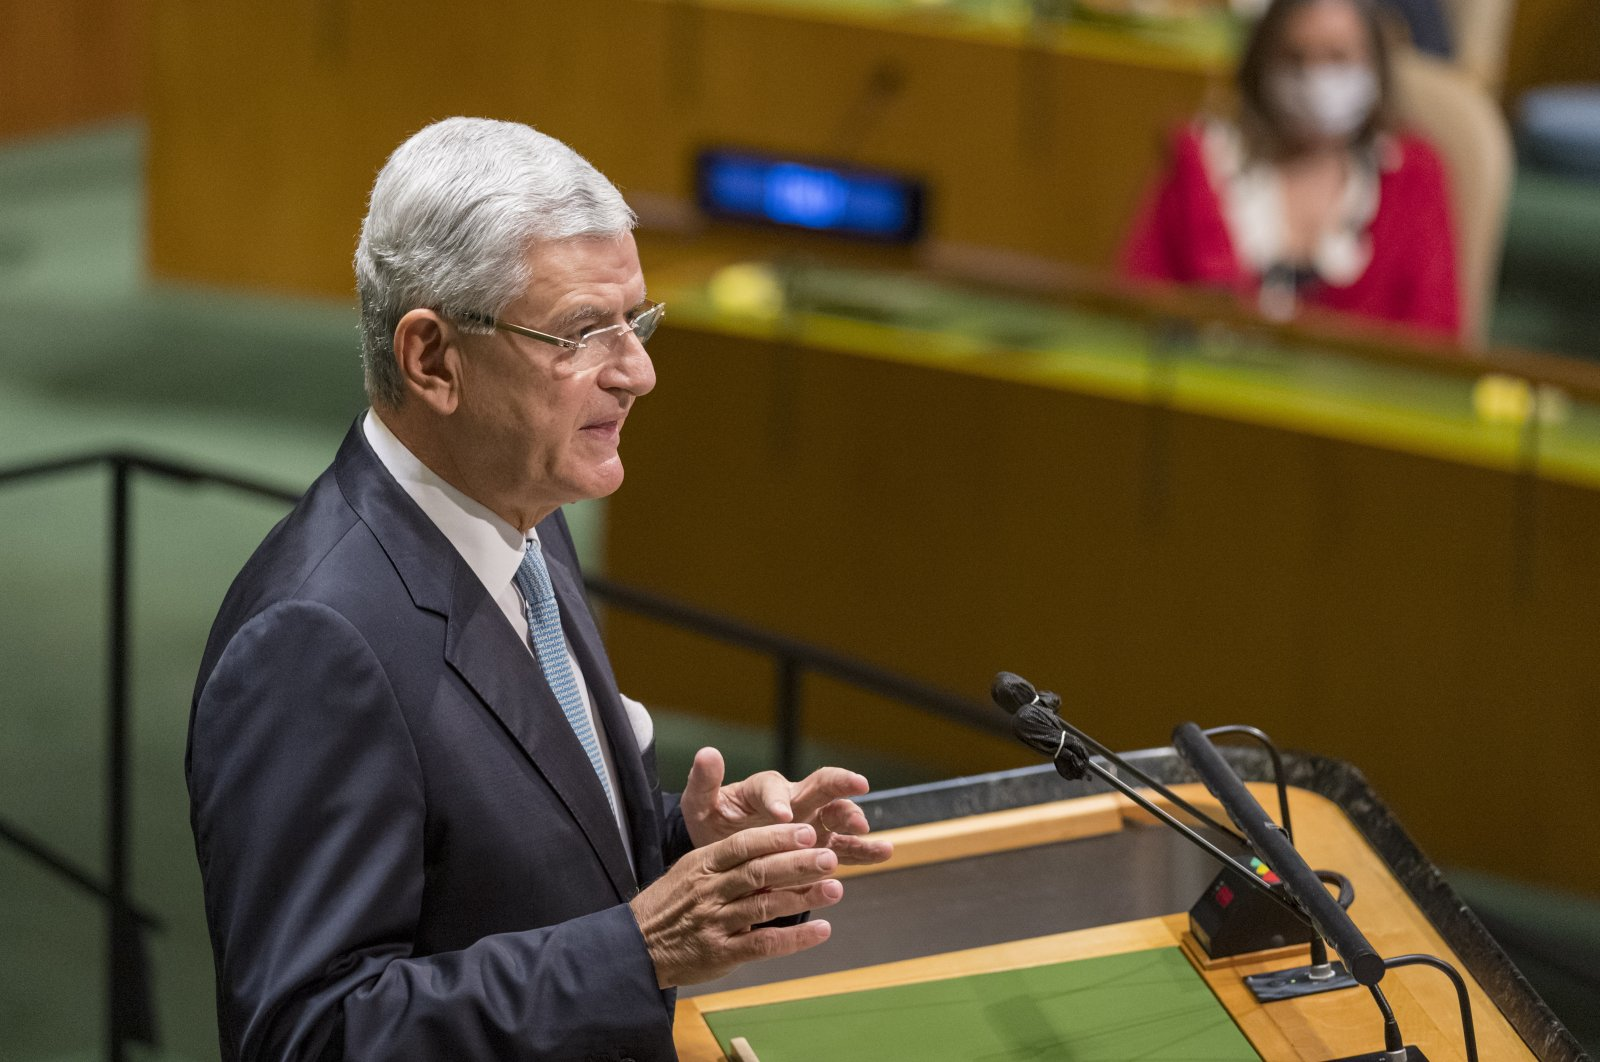 In this photo provided by the United Nations, Volkan Bozkır, president of the 75th session of the United Nations General Assembly, speaks at U.N. Headquarters in New York, U.S., Sept. 22, 2020. (AP File Photo)